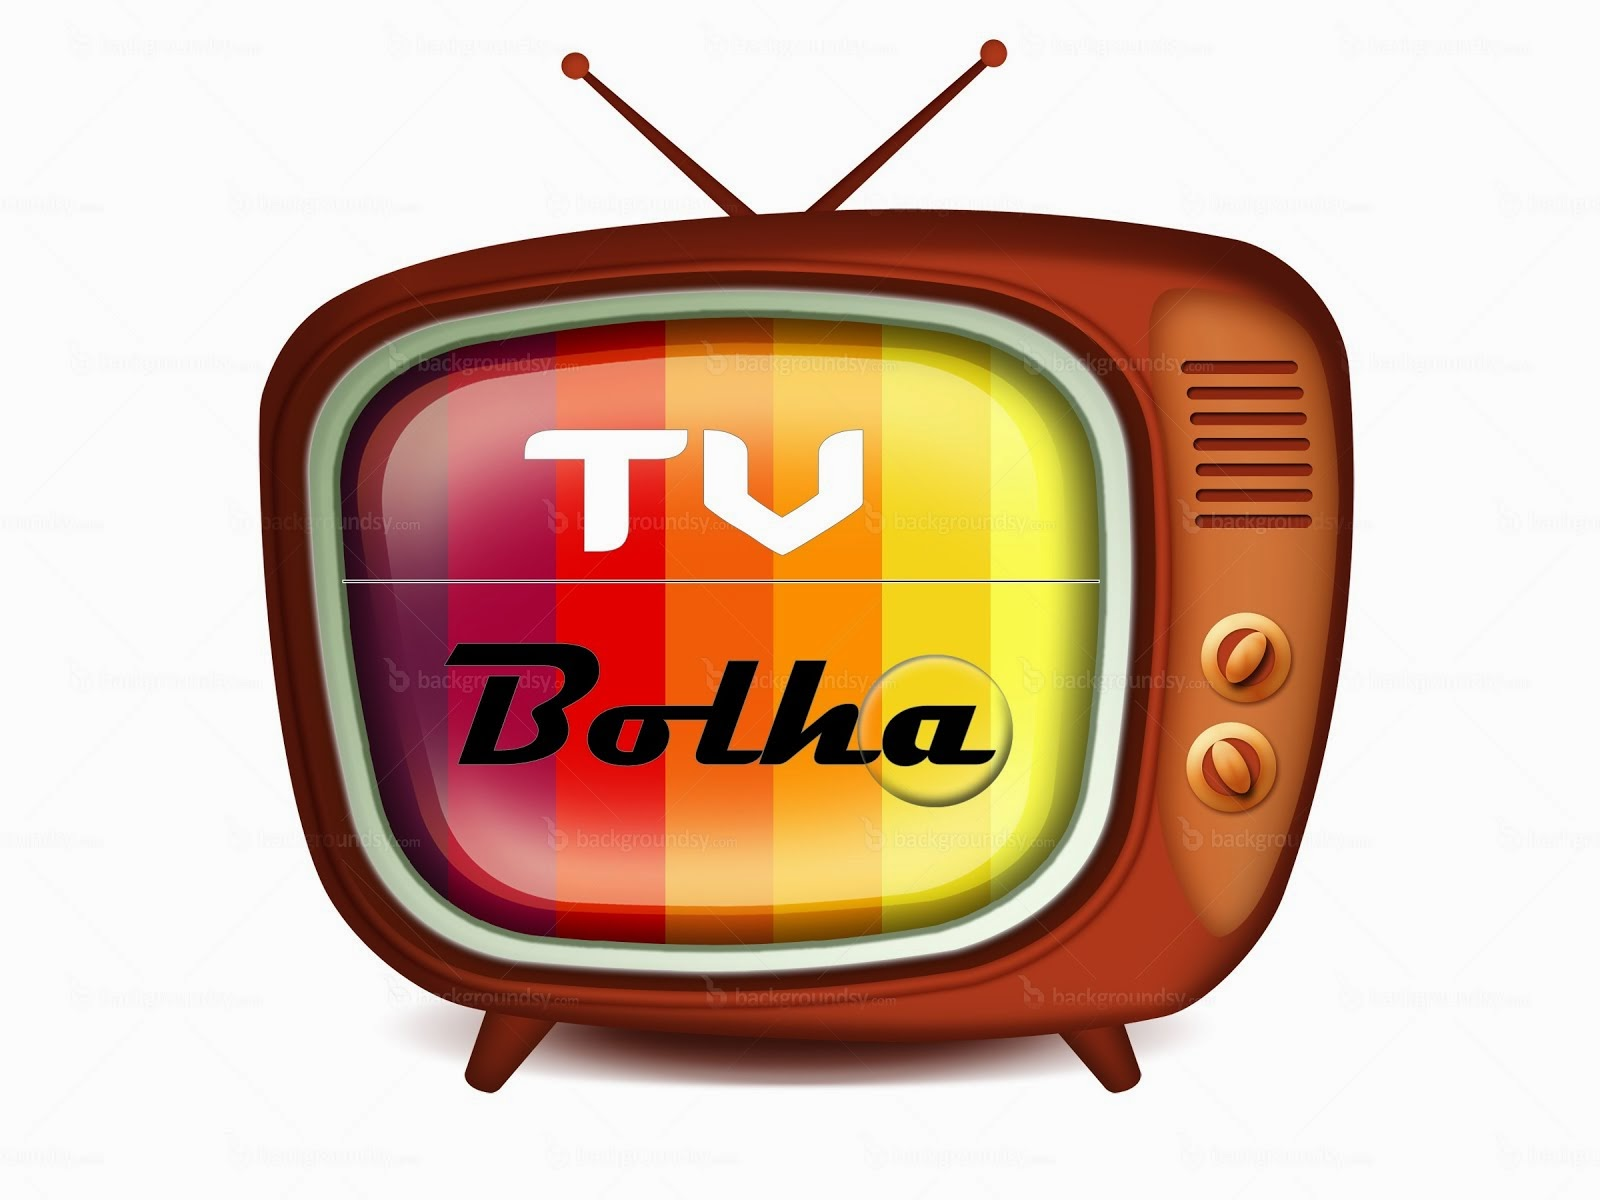 TV DO BOLHA